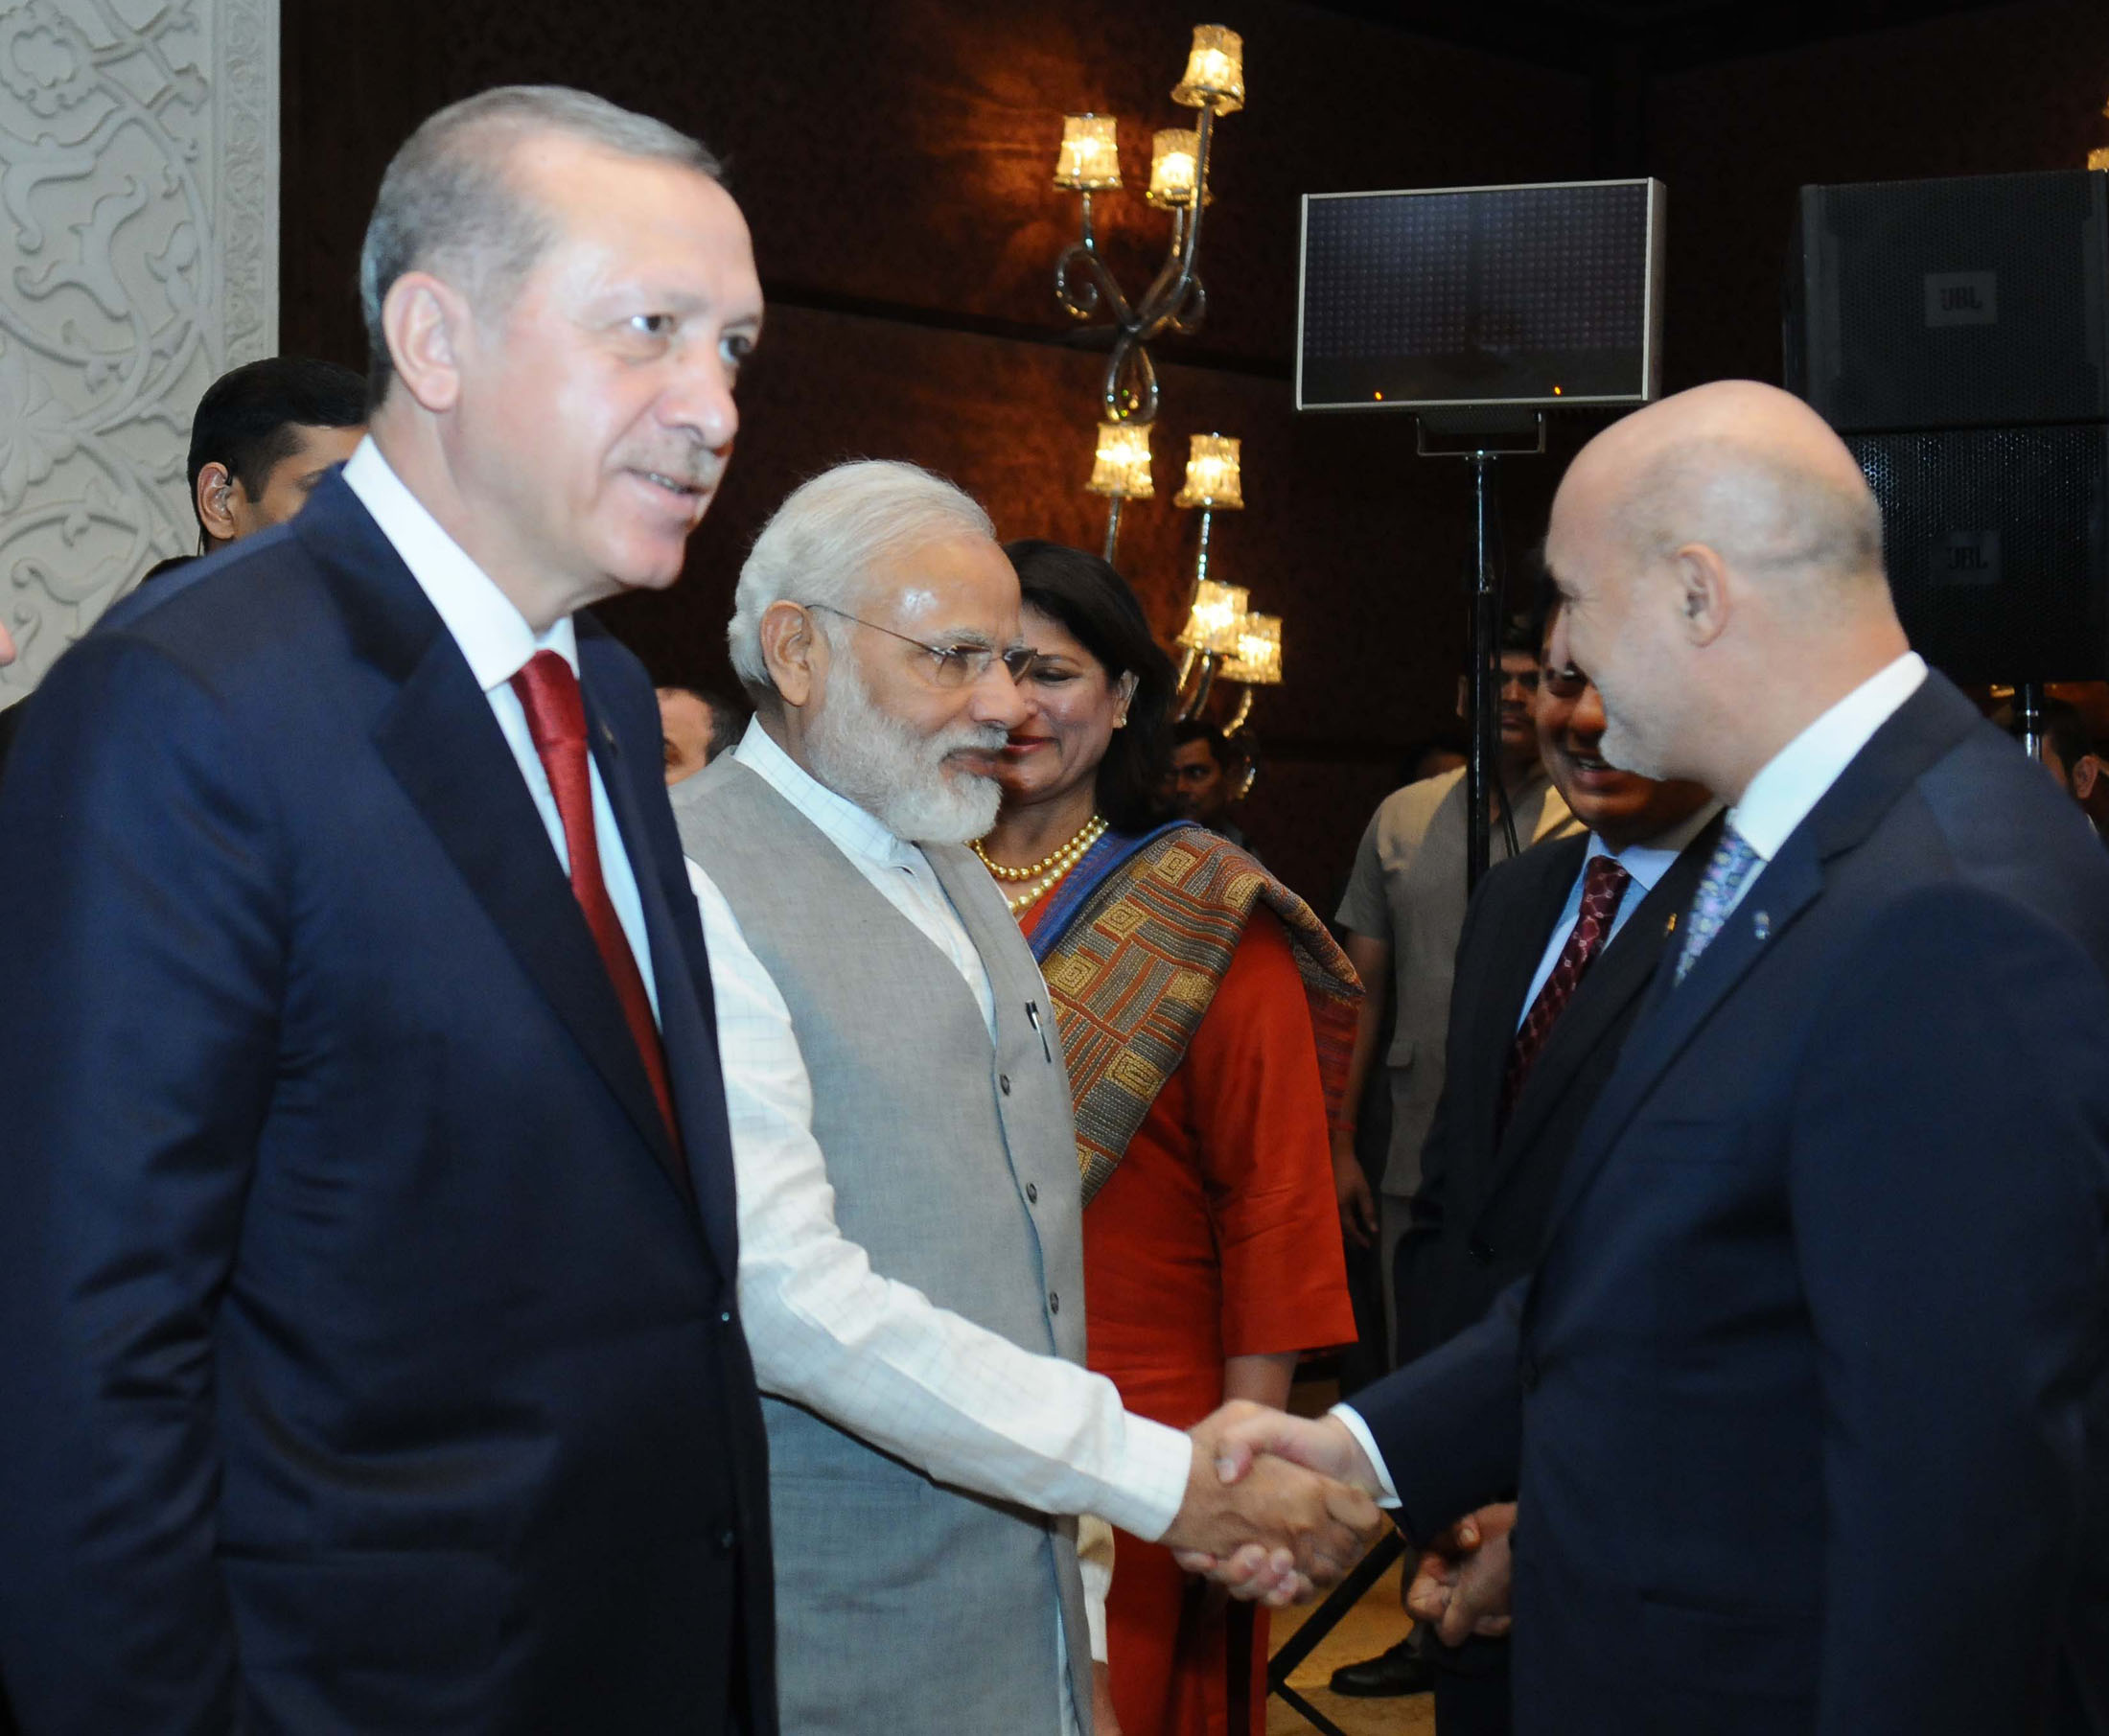 Prime Minister Narendra Modi and the President of Turkey Recep Tayyip Erdogan (left) at the India-Turkey Business Summit, in New Delhi.